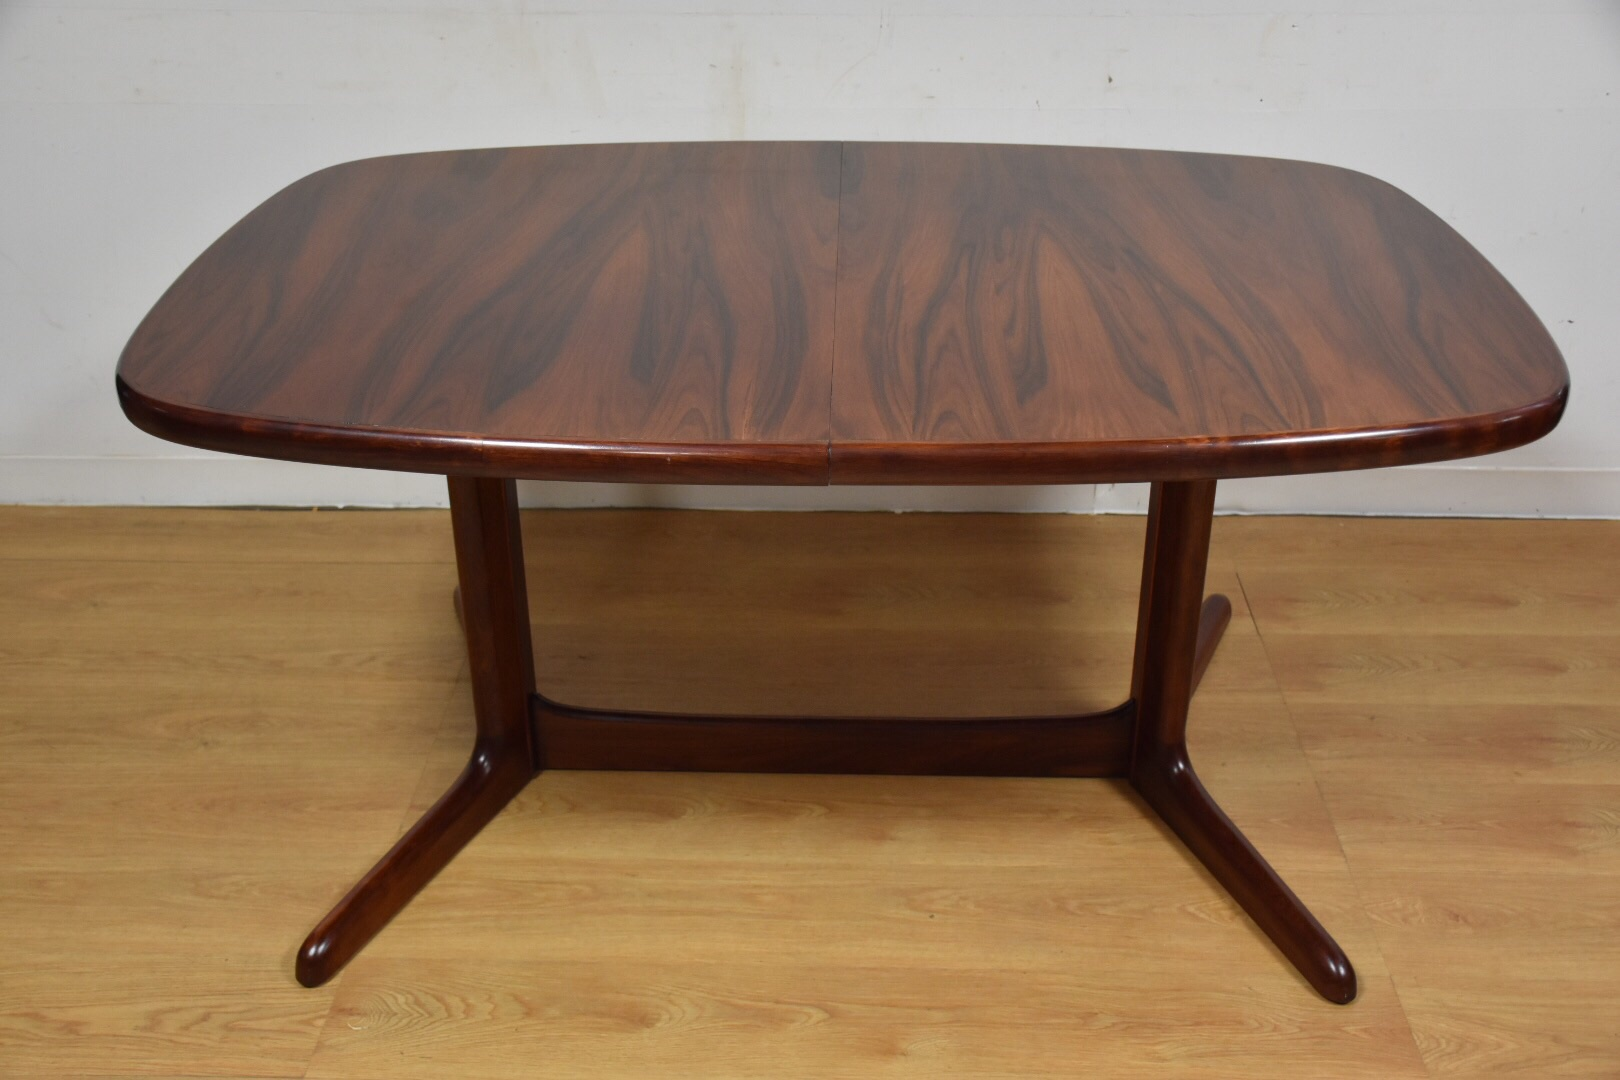 Danish Modern Rosewood Extendable Dining Table Chairish : b27e8c9c 7cb4 42fe 81da 215e7d5bc2dcaspectfitampwidth640ampheight640 from www.chairish.com size 640 x 640 jpeg 29kB